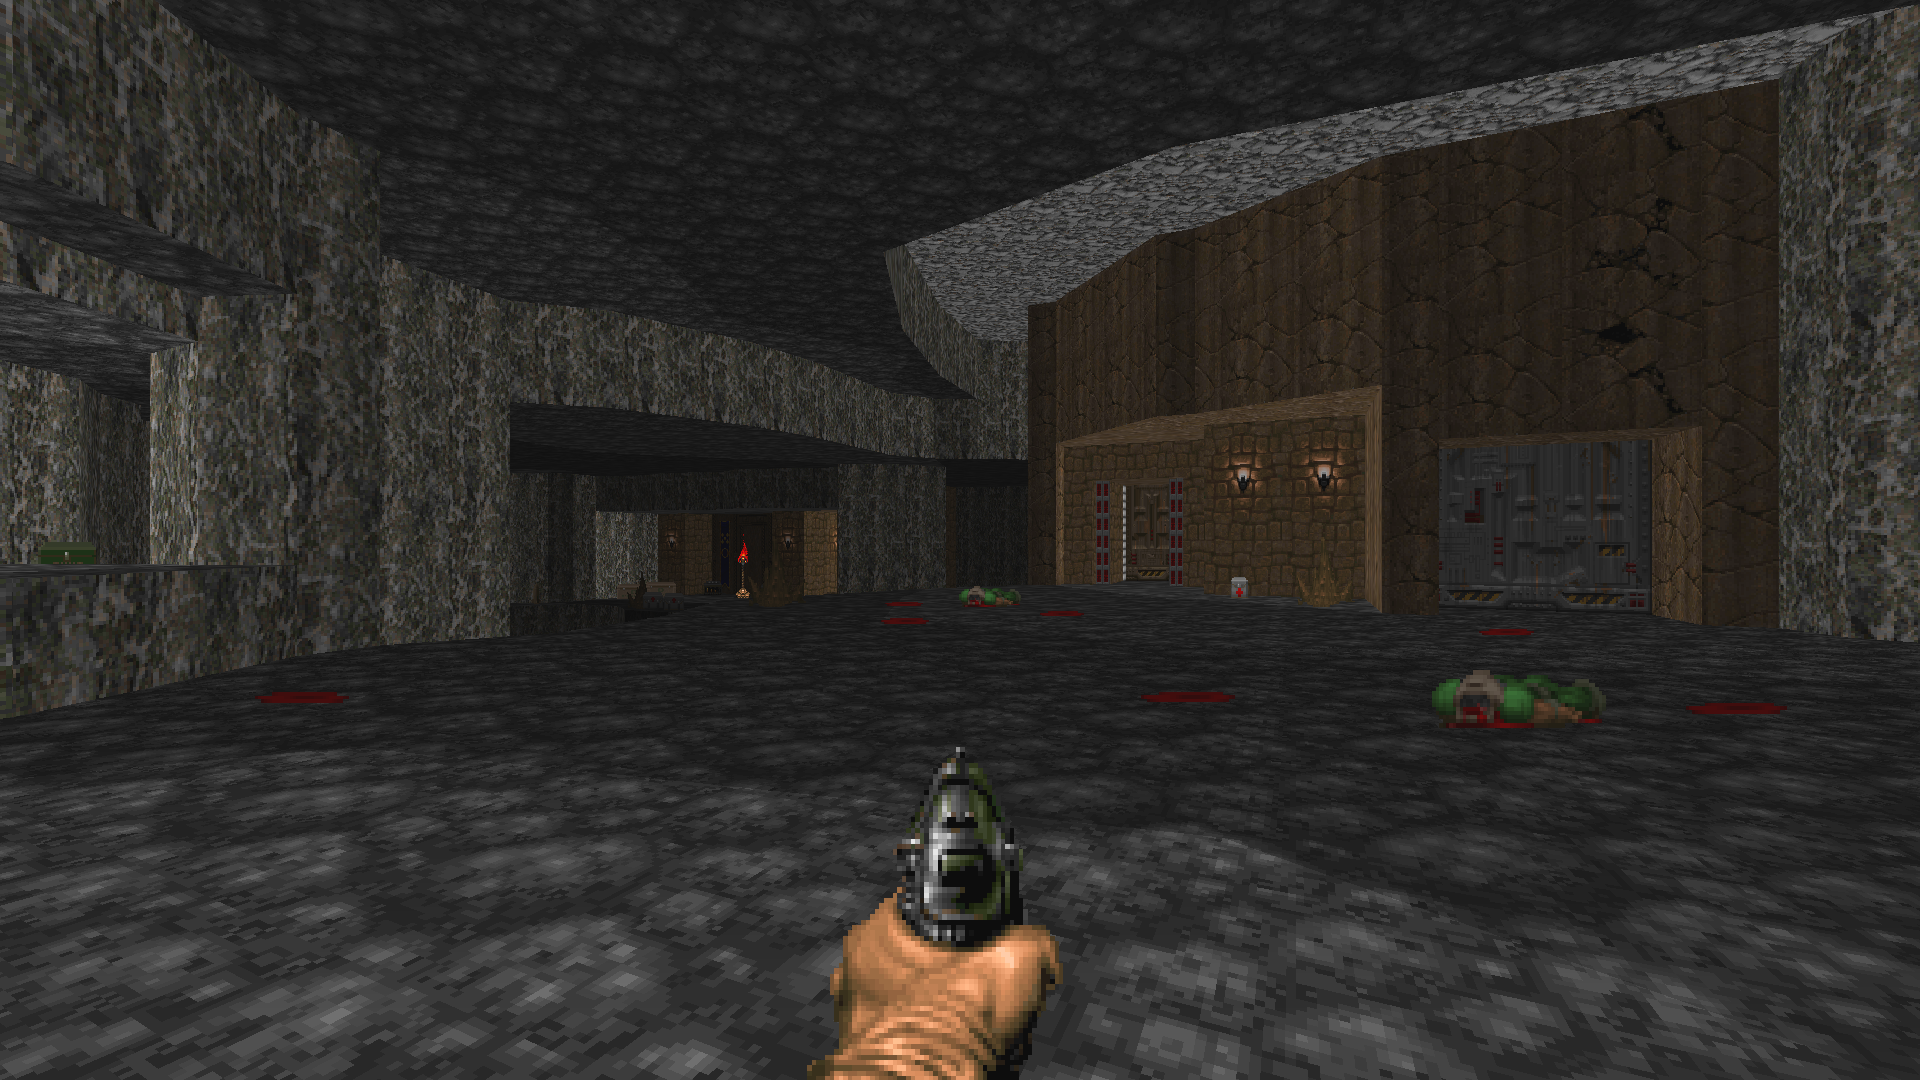 Screenshot_Doom_20190819_215223.png.78a76aae91464be21f5d6dc8d26ba6ad.png